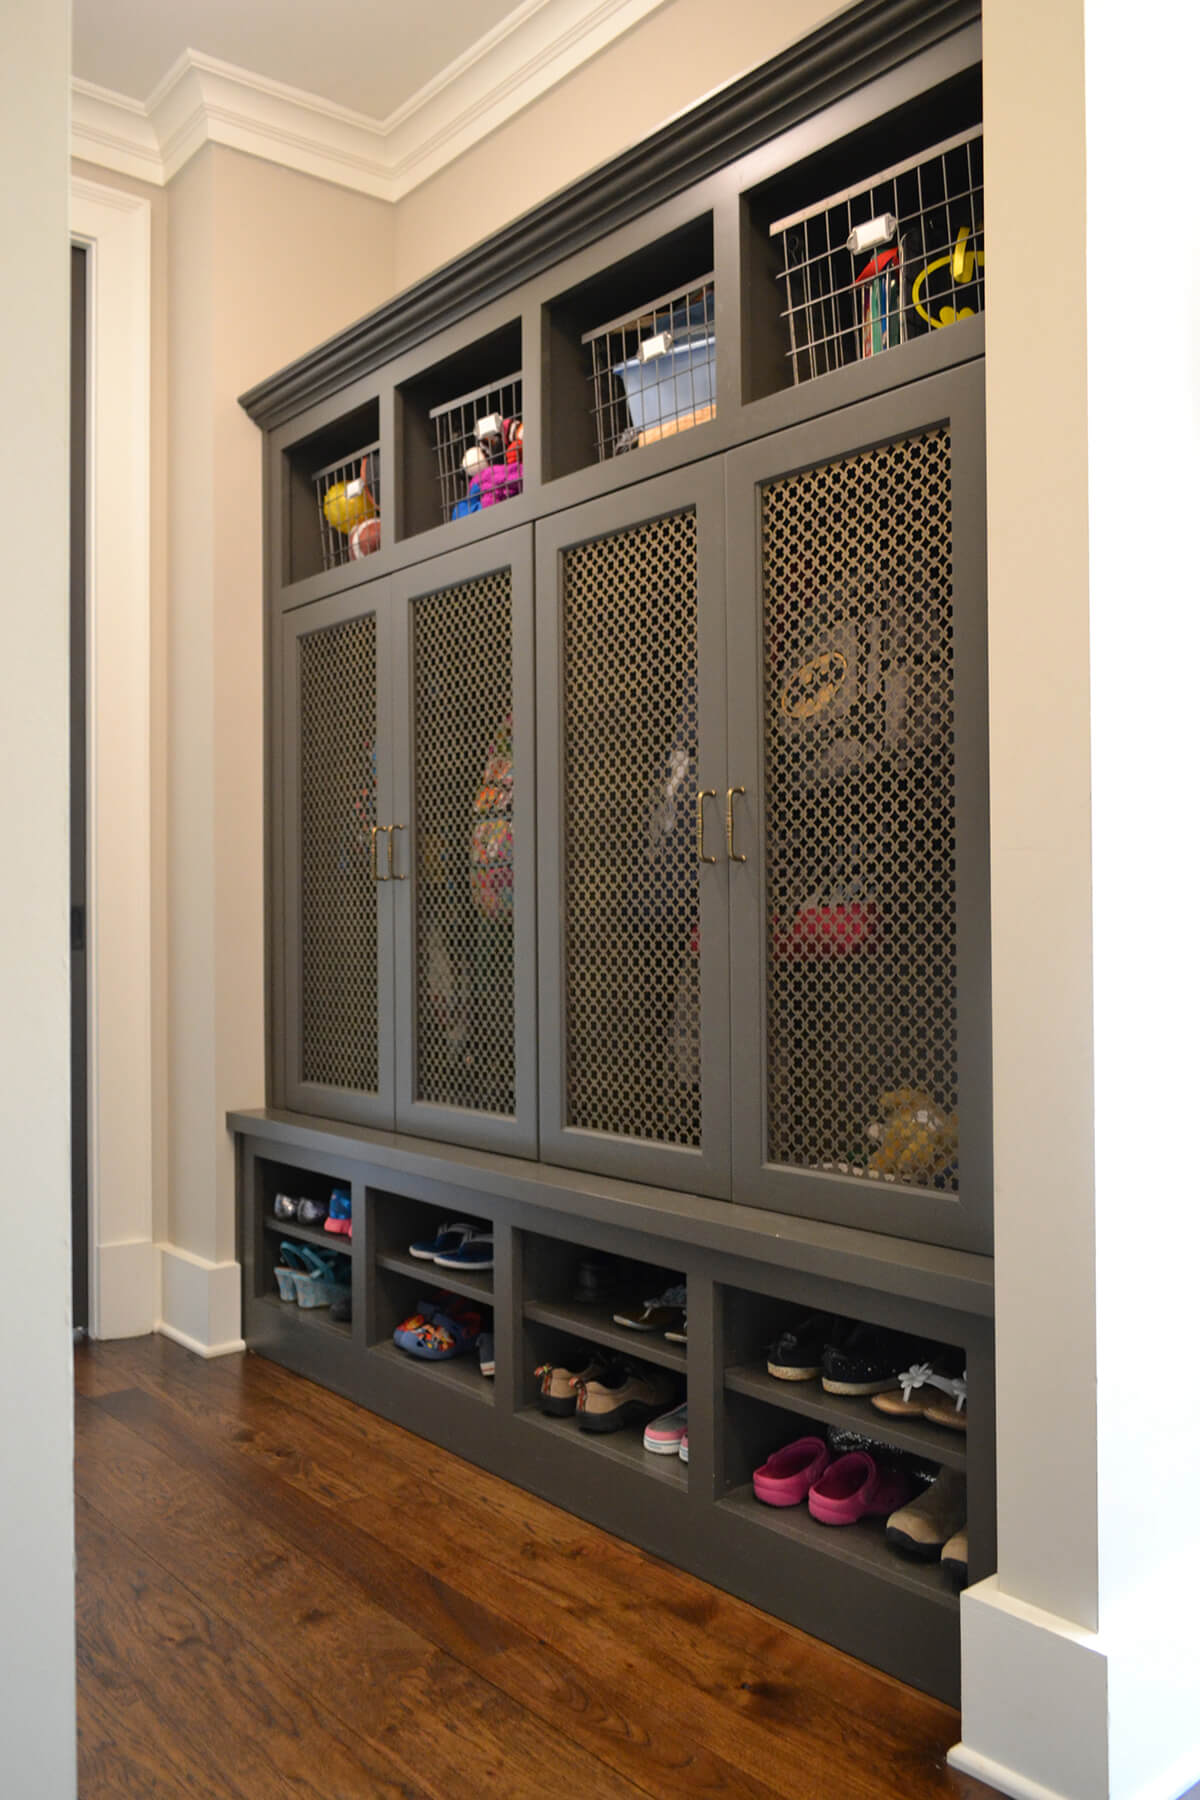 14 clever screened doors for airflow and visibility - Mudroom Design Ideas